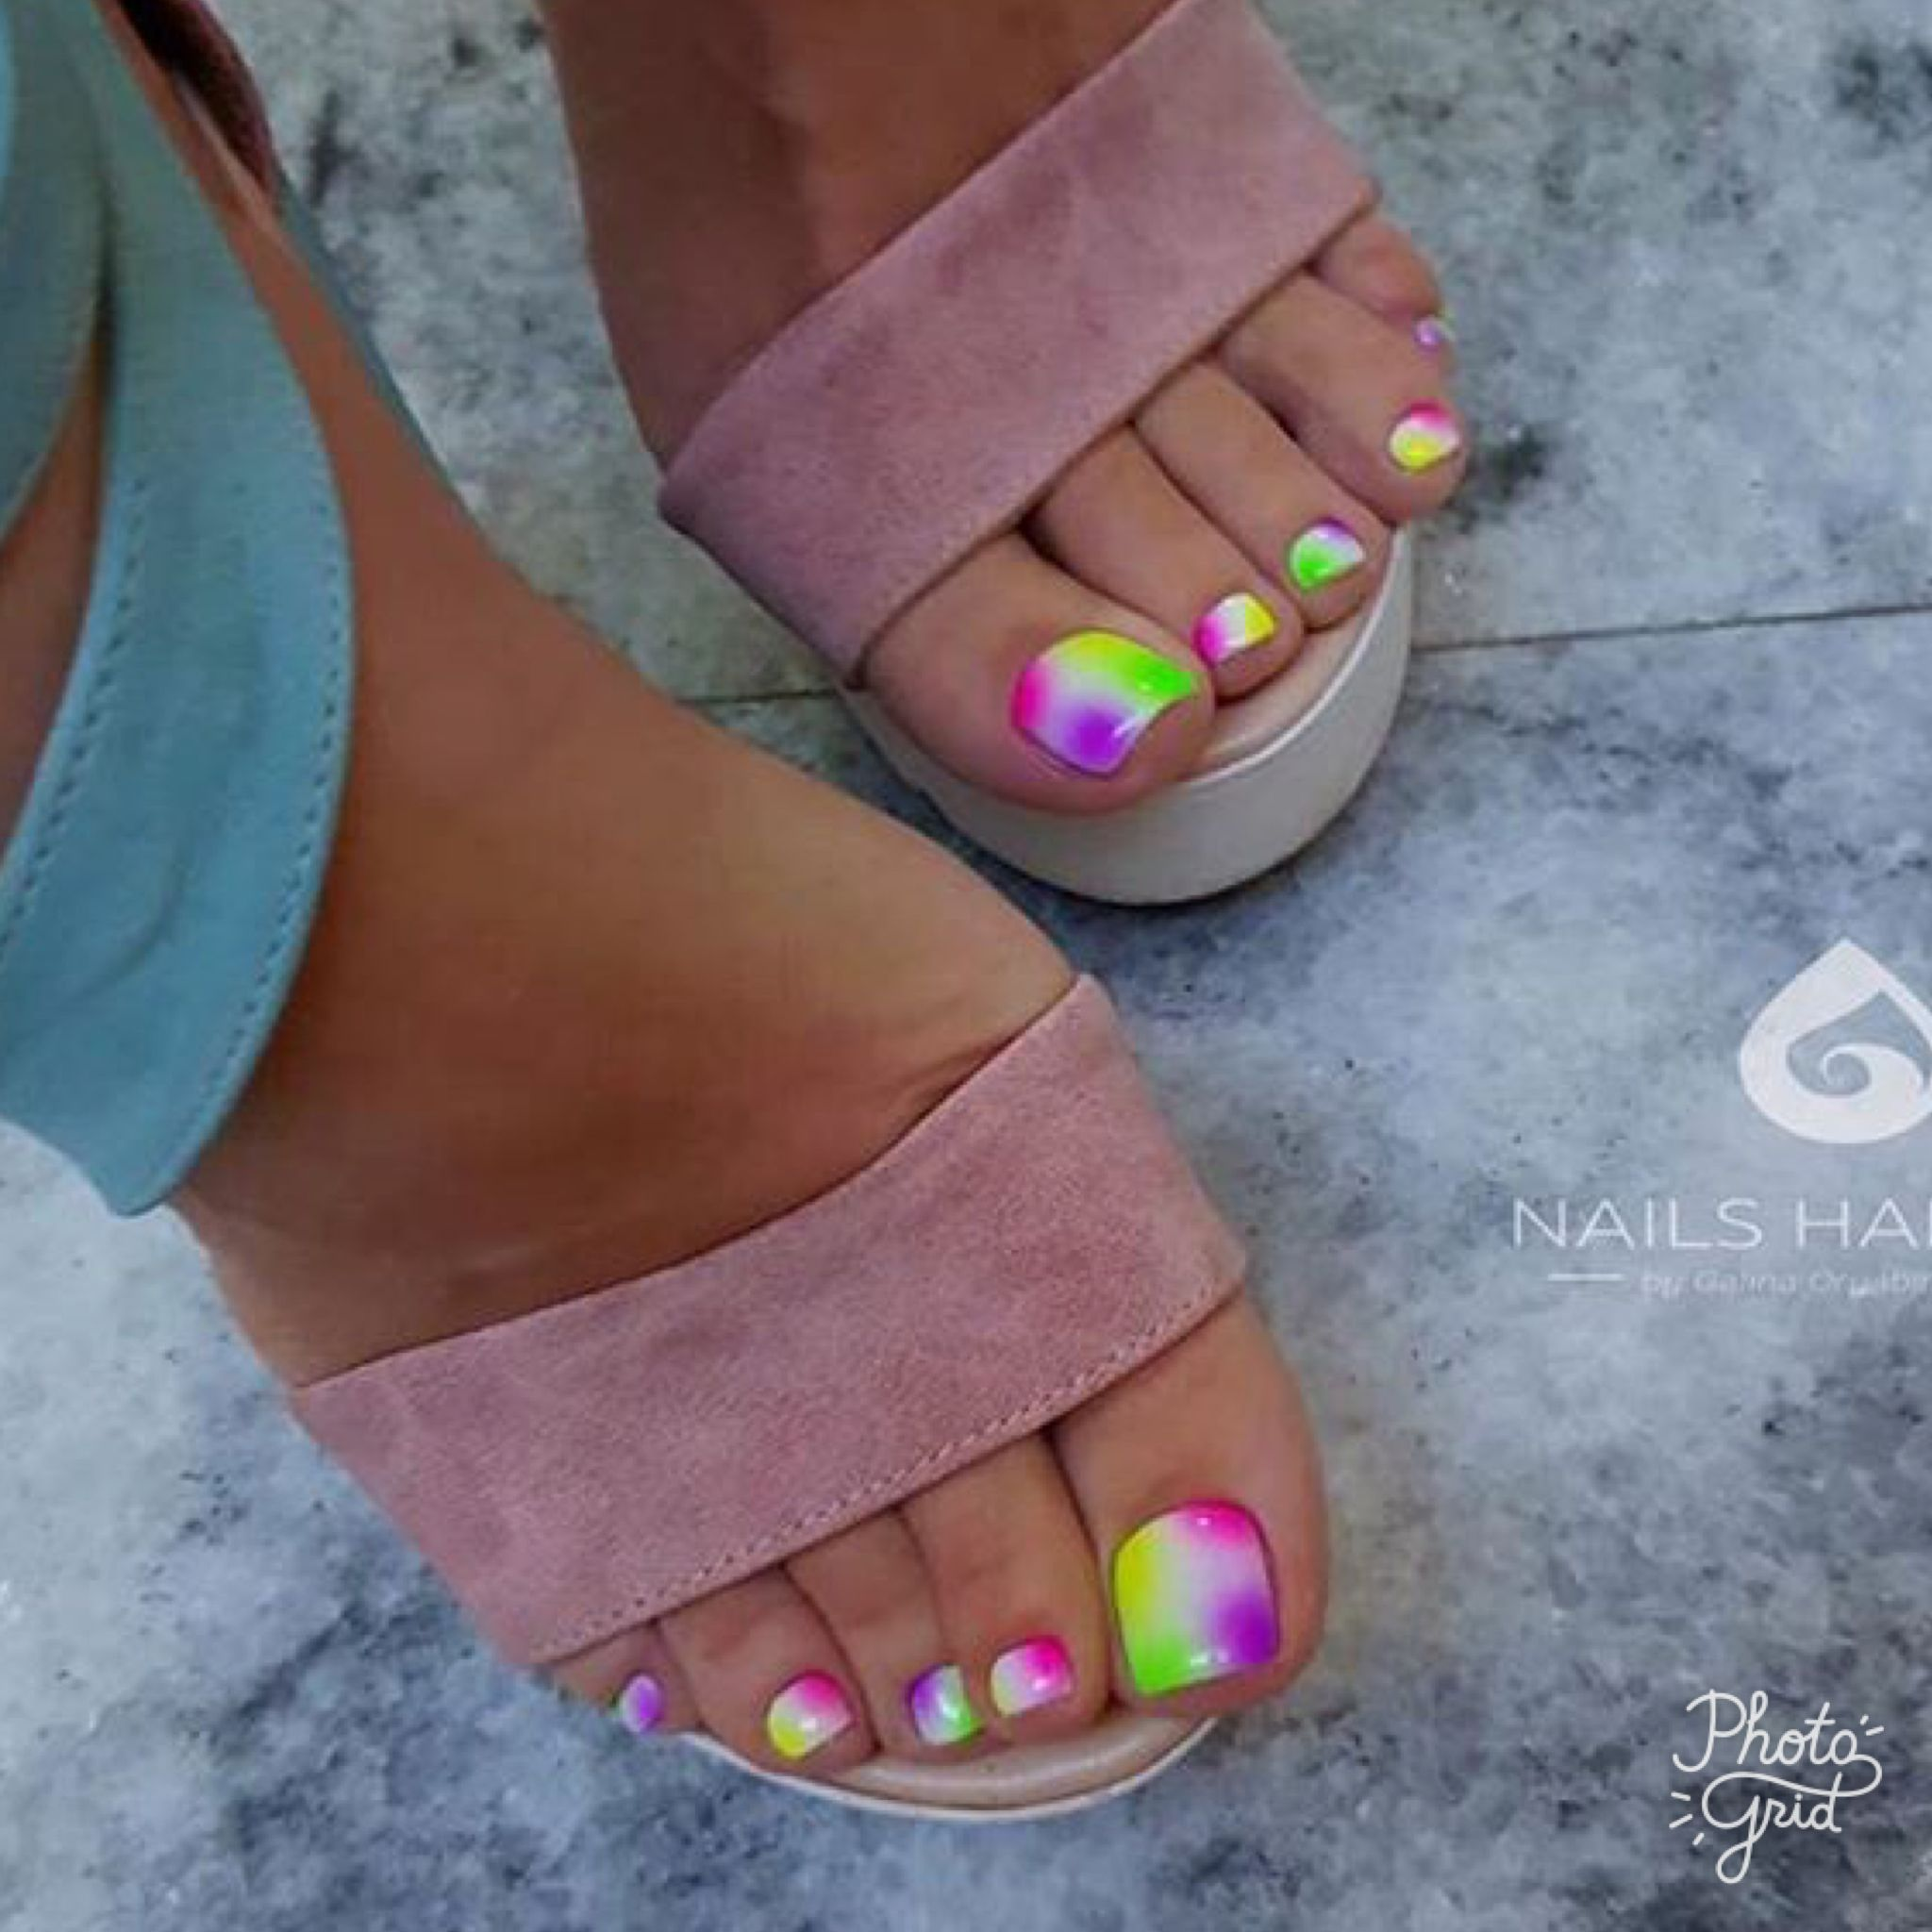 Sandal ready Toe nail art design idea! | decorado de unas | Manicure ...